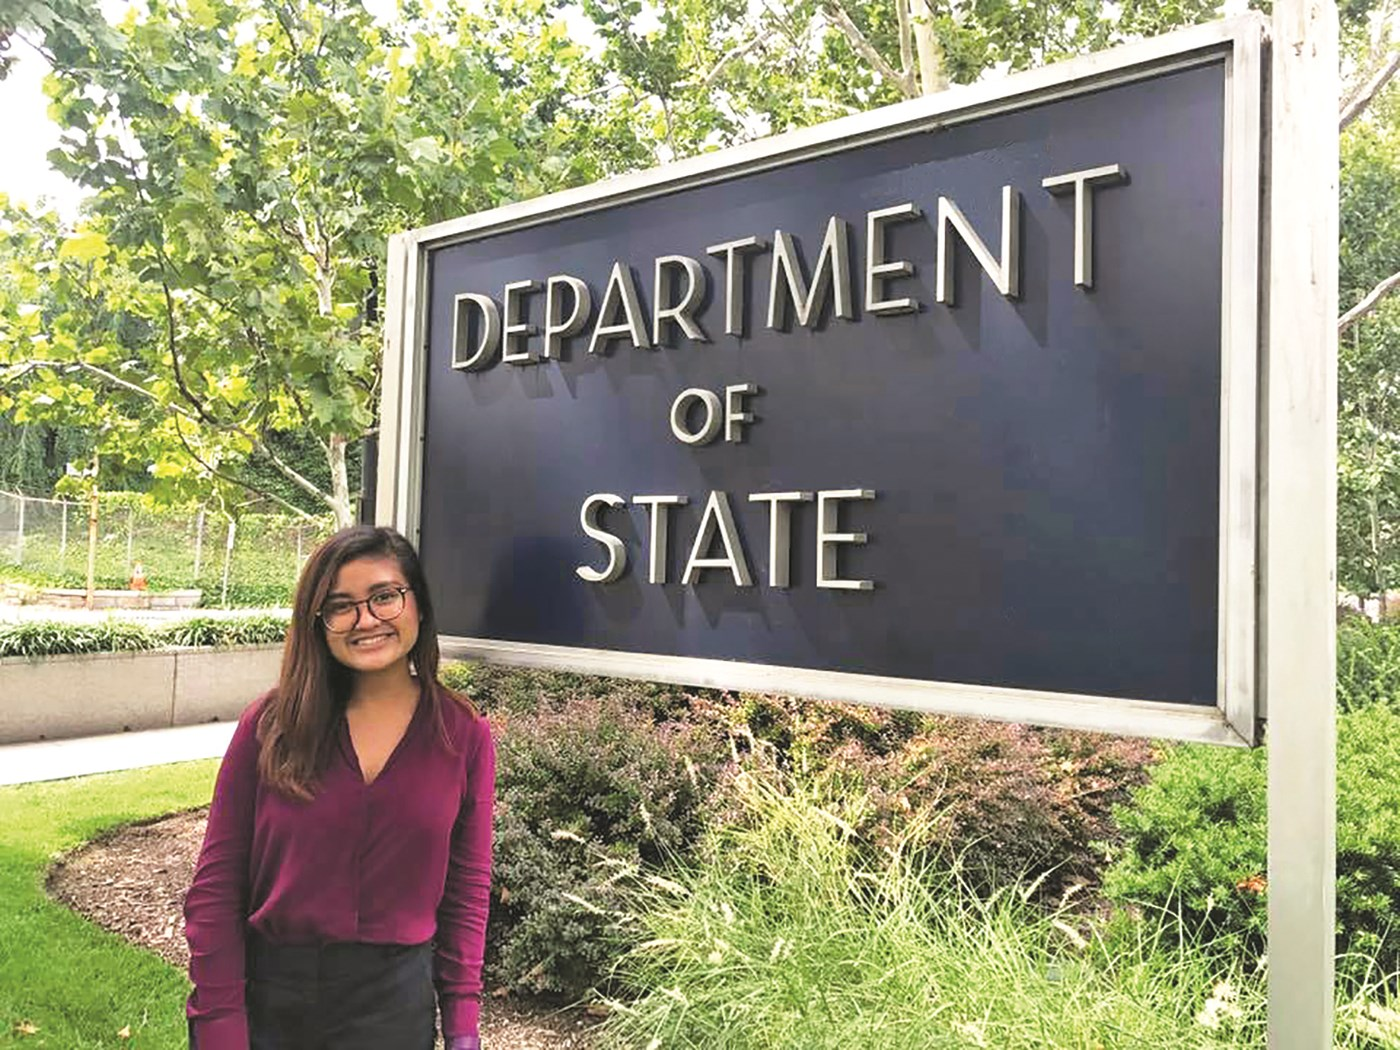 UMass Lowell Junior political science and government major Ayuthaya Basuseto, intern for the U.S. Department of State - Bureau of International Information Programs